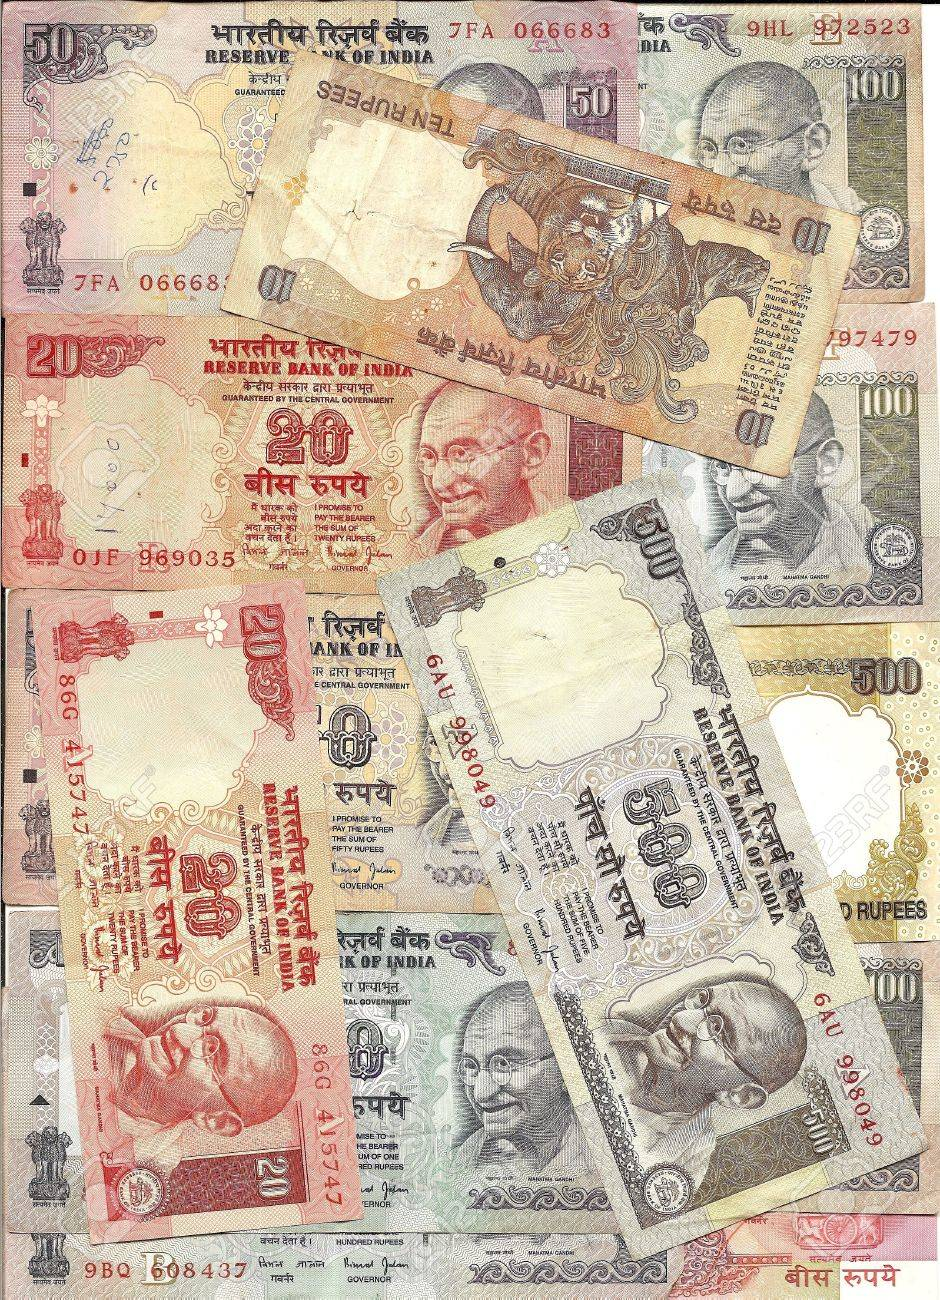 Rupee Note Denominations Indian Rupee Notes With